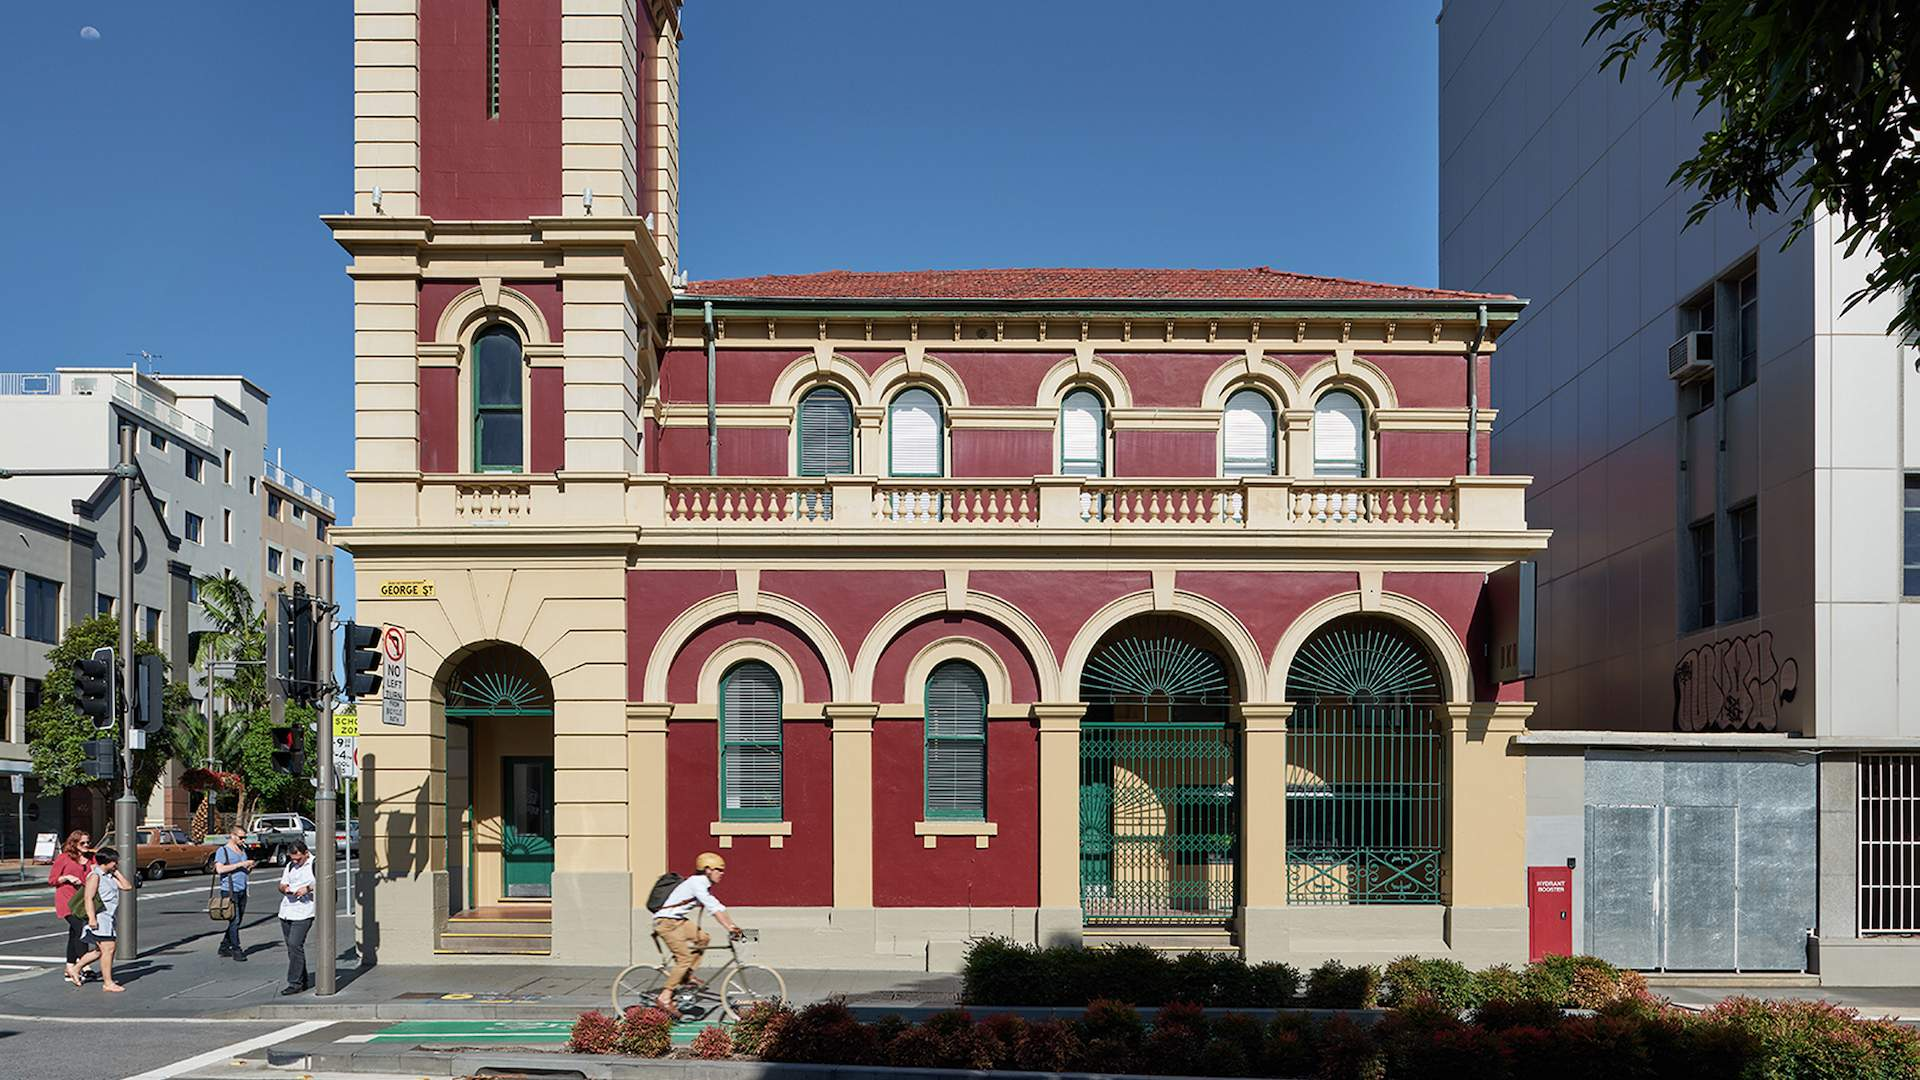 The Redfern Post Office Will Be Transformed Into an Aboriginal and Torres Strait Islander Cultural Hub